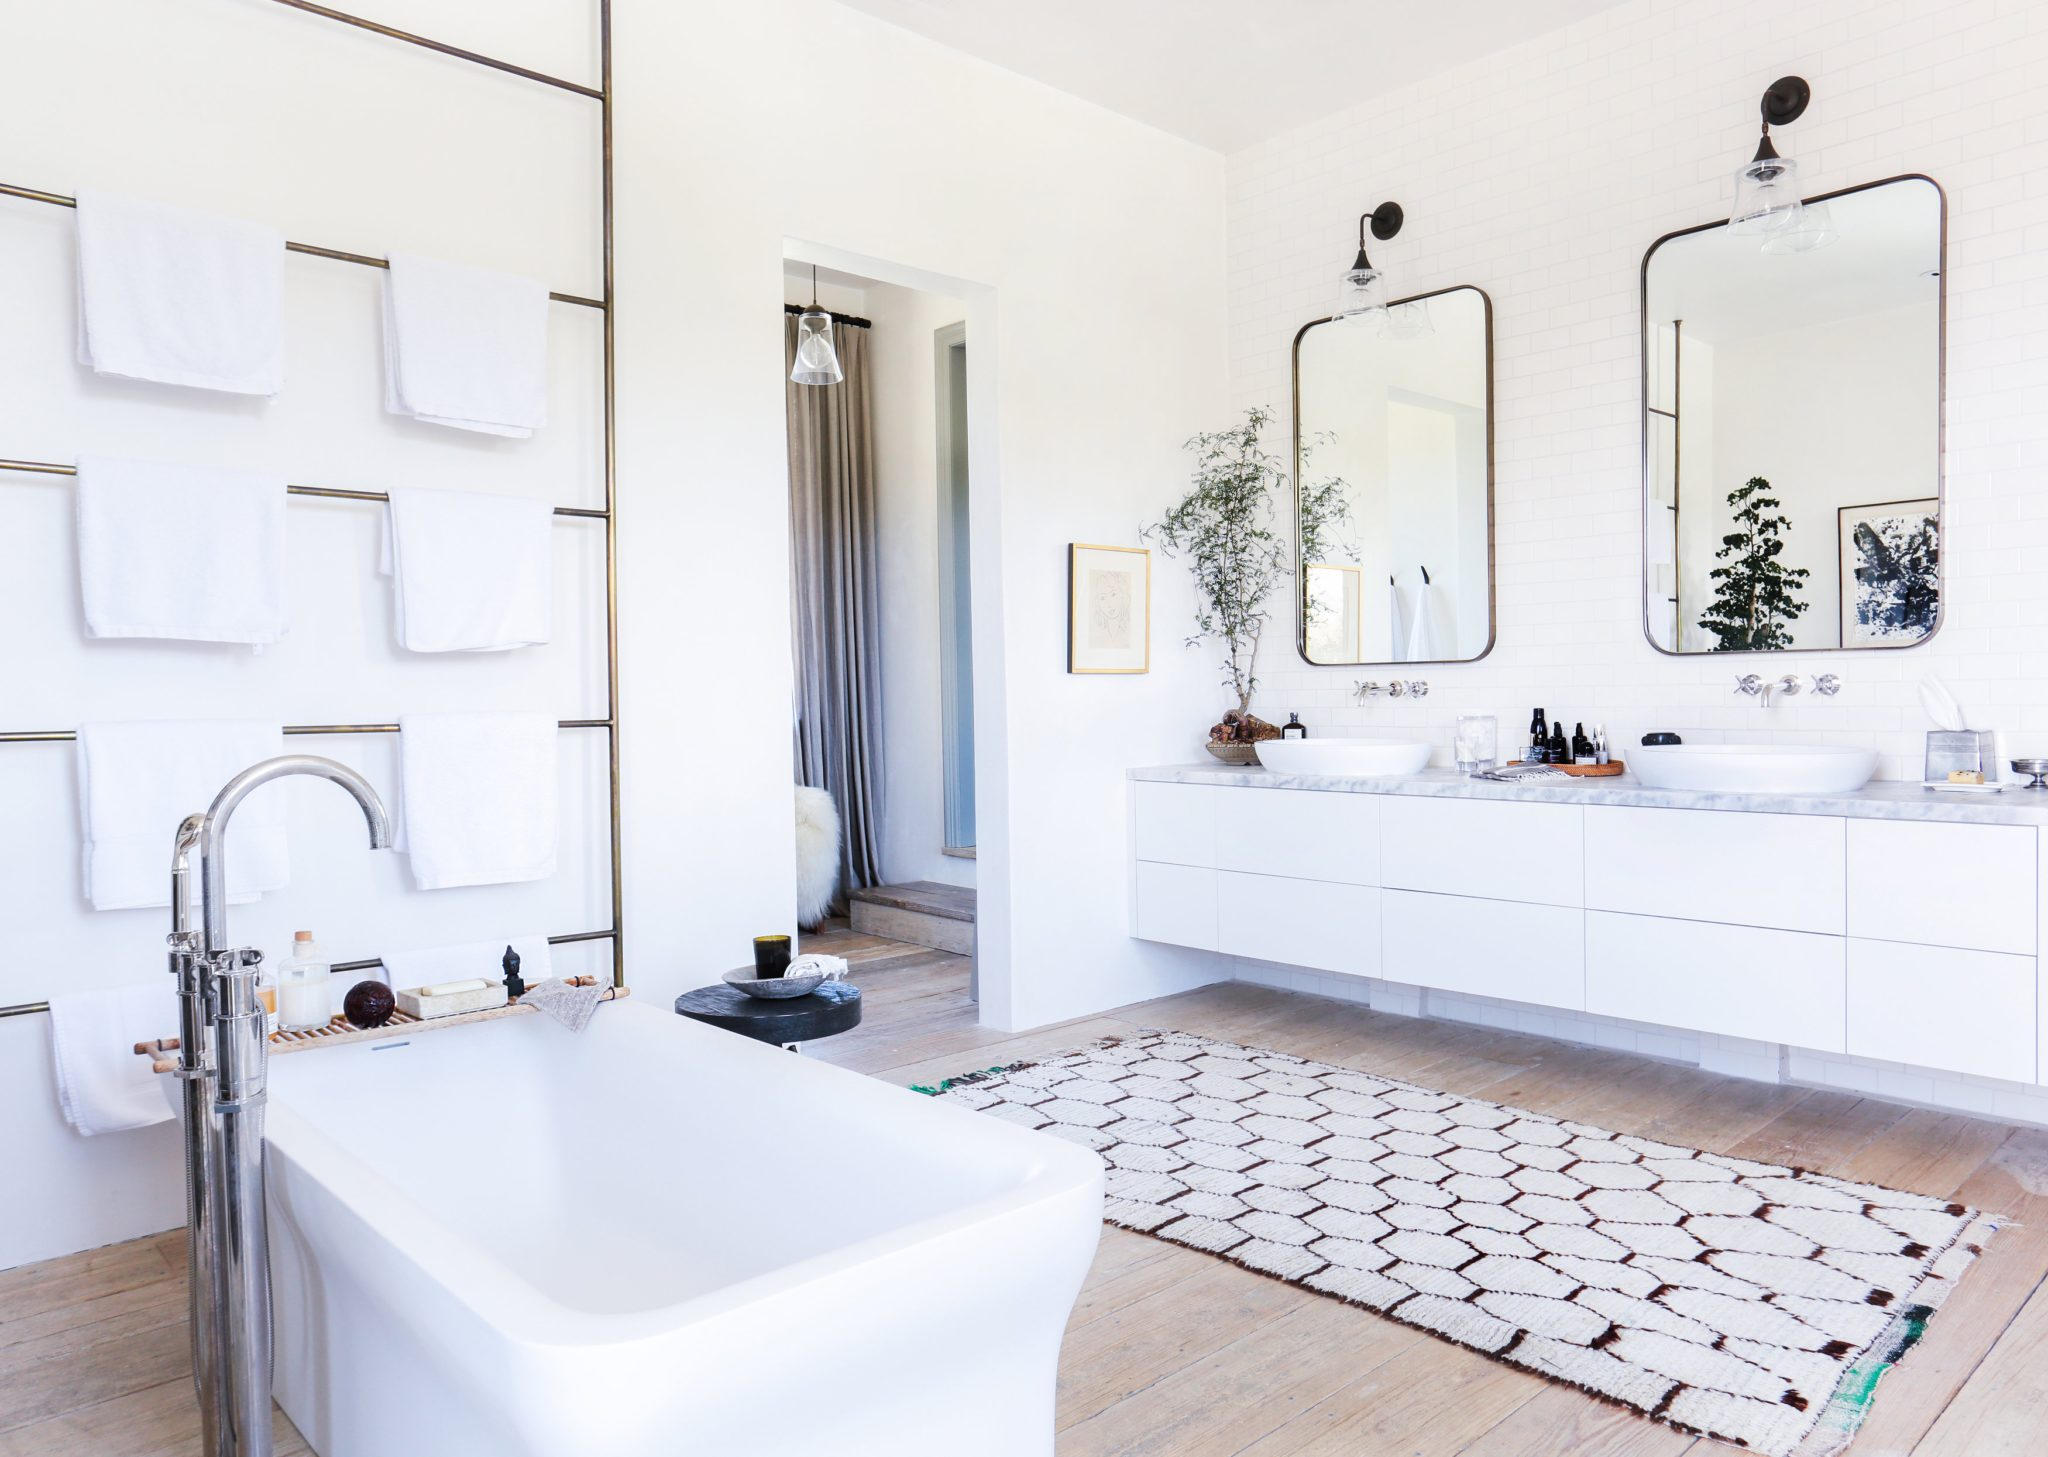 Luxurious Bathroom Retreats Featuring Waterworks Chairish Blog